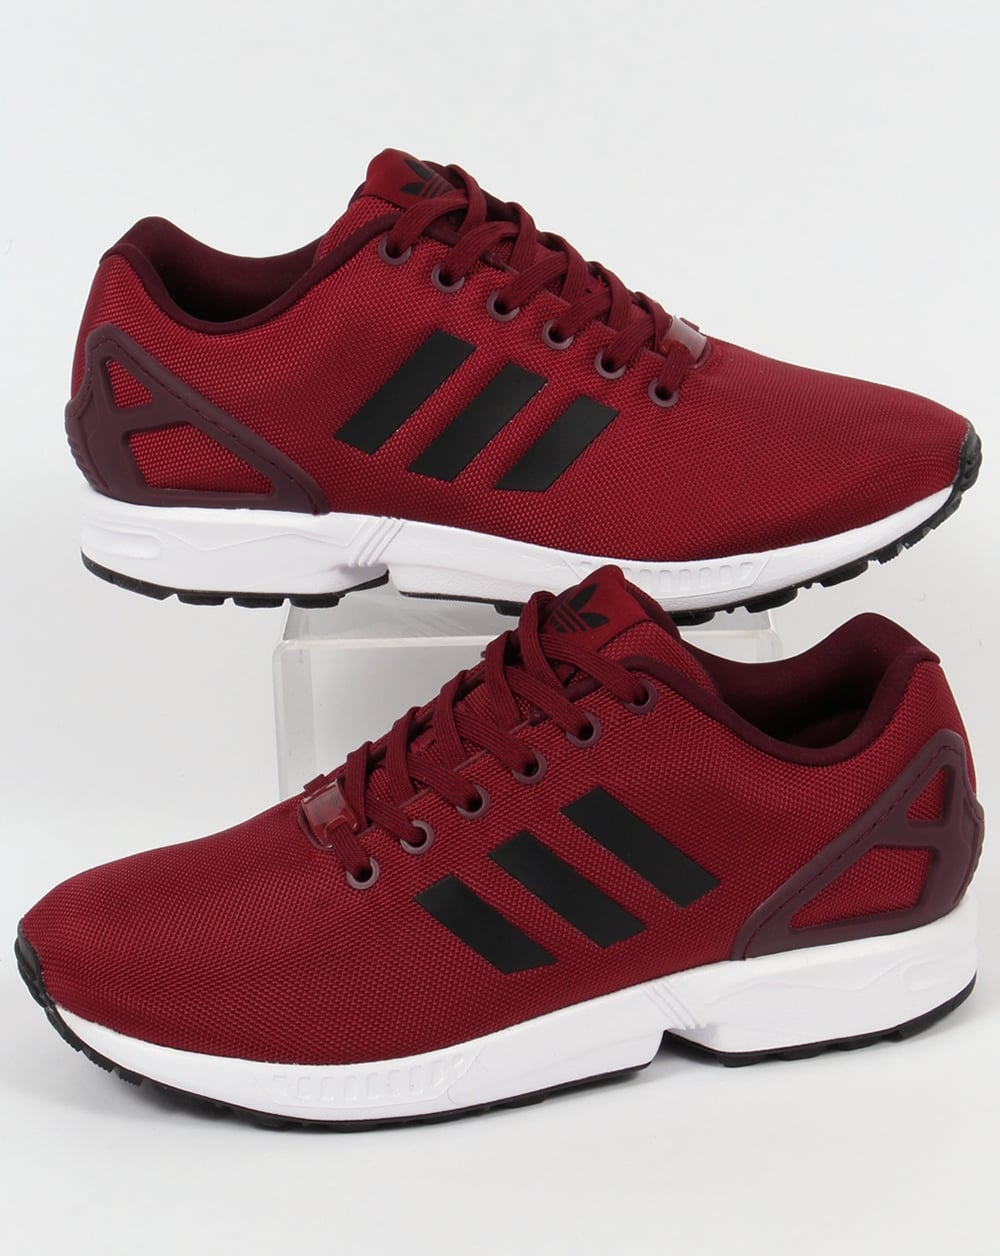 reputable site a8405 545a3 Adidas ZX Flux Trainers Burgundy/Black